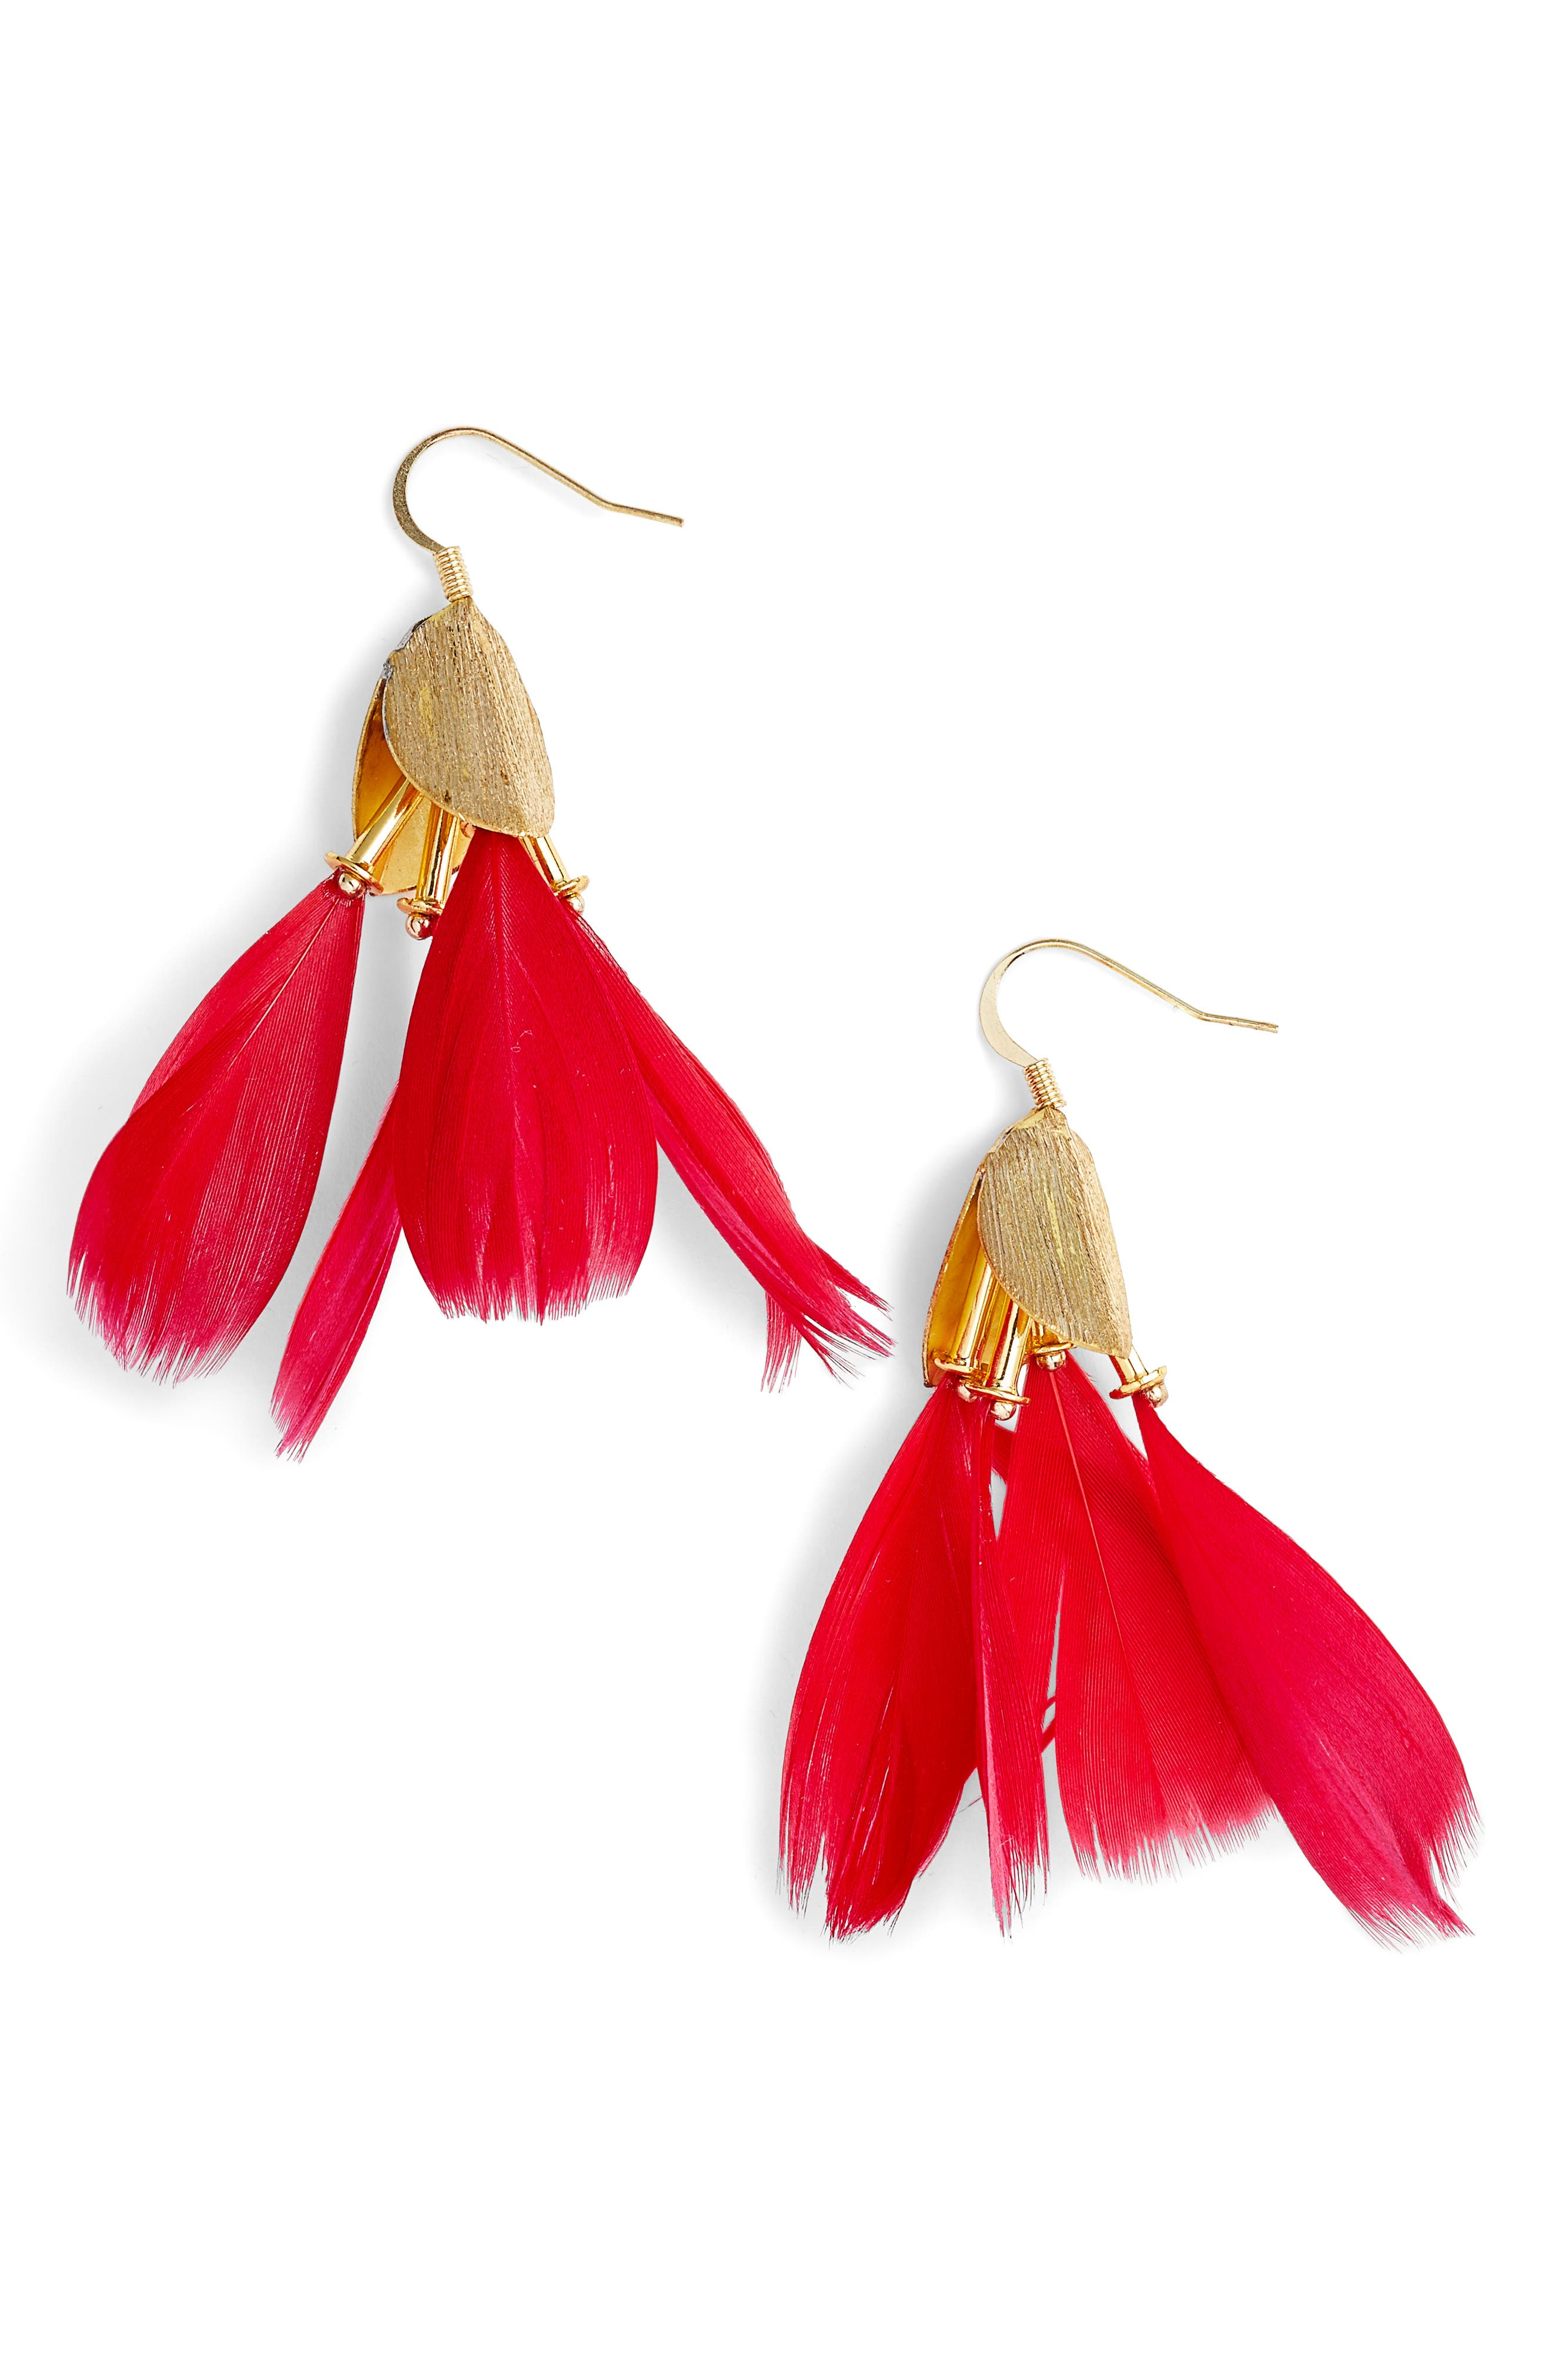 Dancing Feather Earrings,                         Main,                         color, Cherry